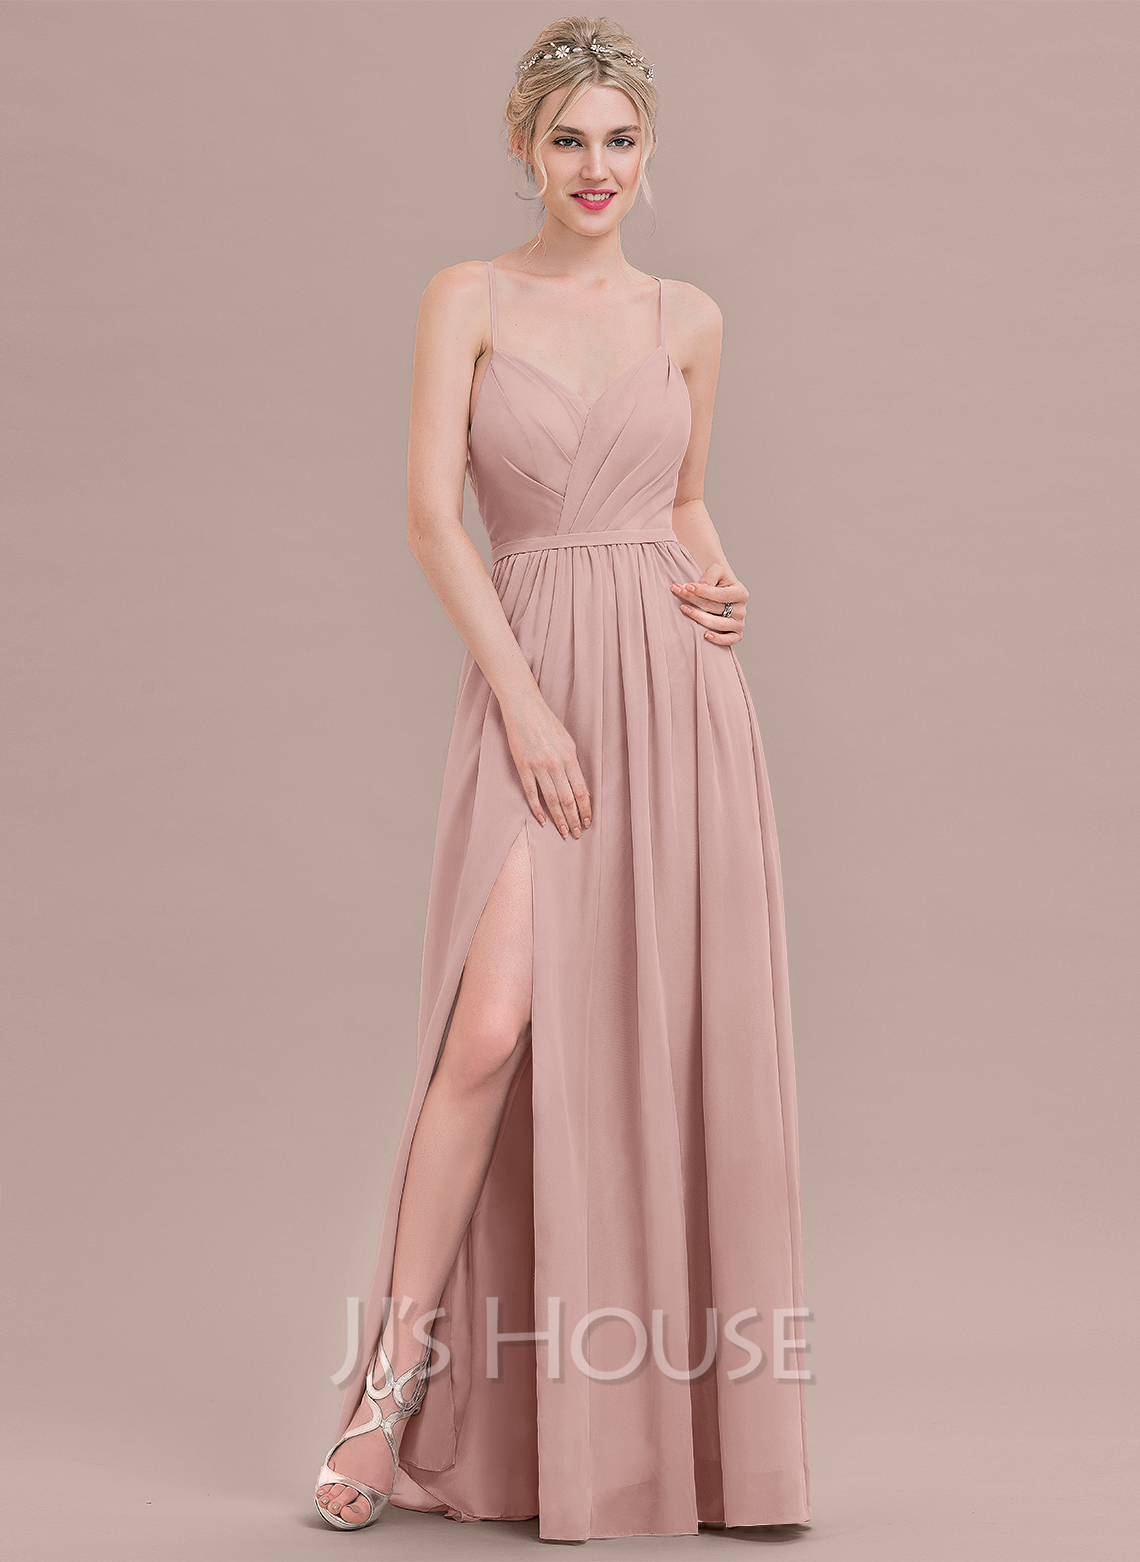 9676d302611 A-Line Princess Sweetheart Floor-Length Chiffon Prom Dresses With Ruffle  Split Front. Loading zoom